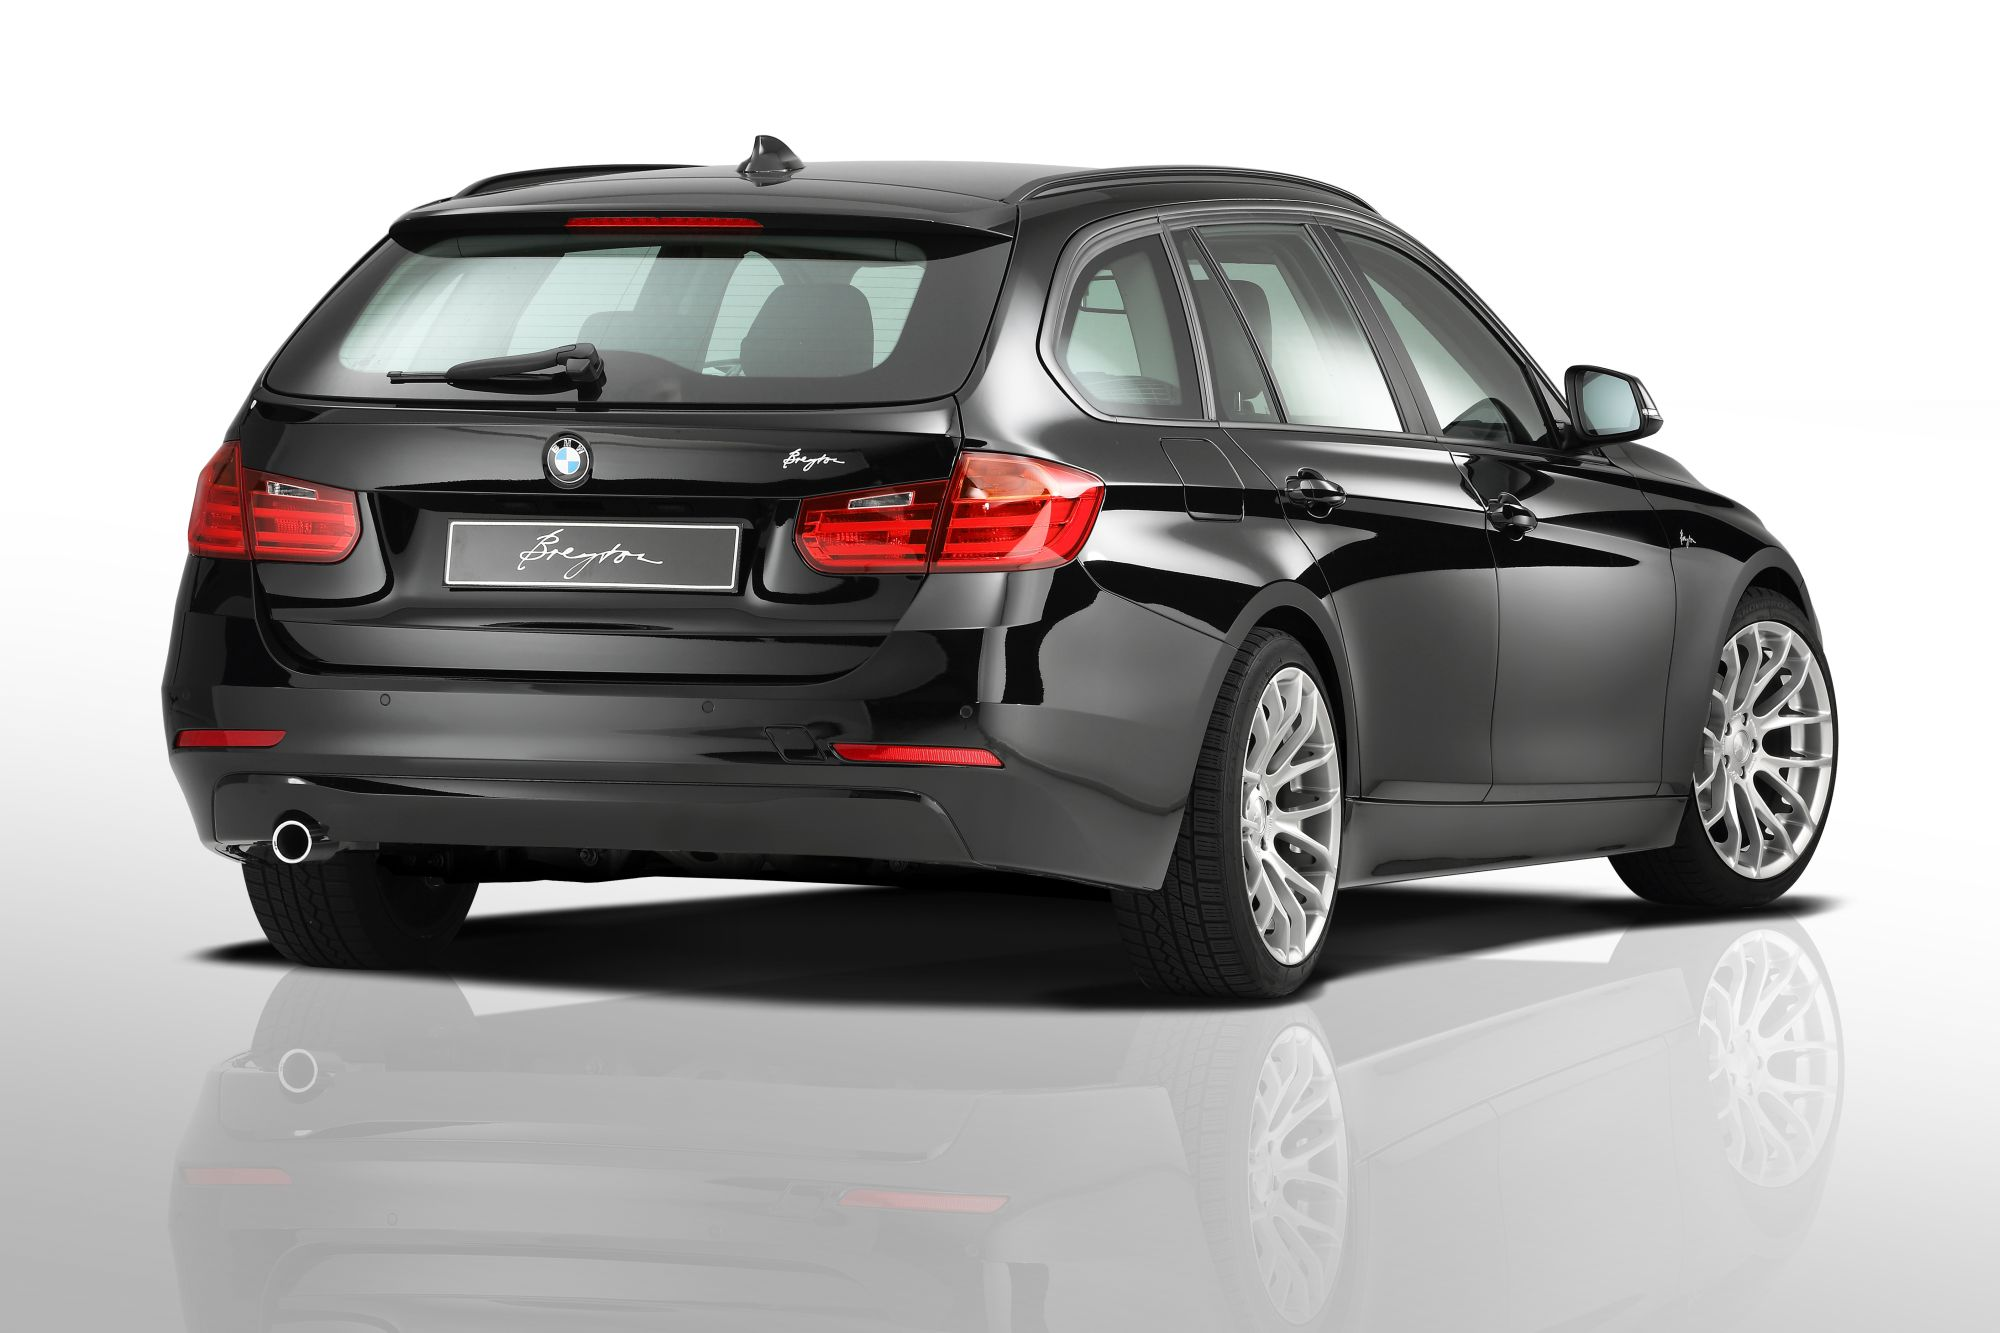 breyton race gts hyper silver 8 5x19 u 9 5x19 bmw 5er e60. Black Bedroom Furniture Sets. Home Design Ideas